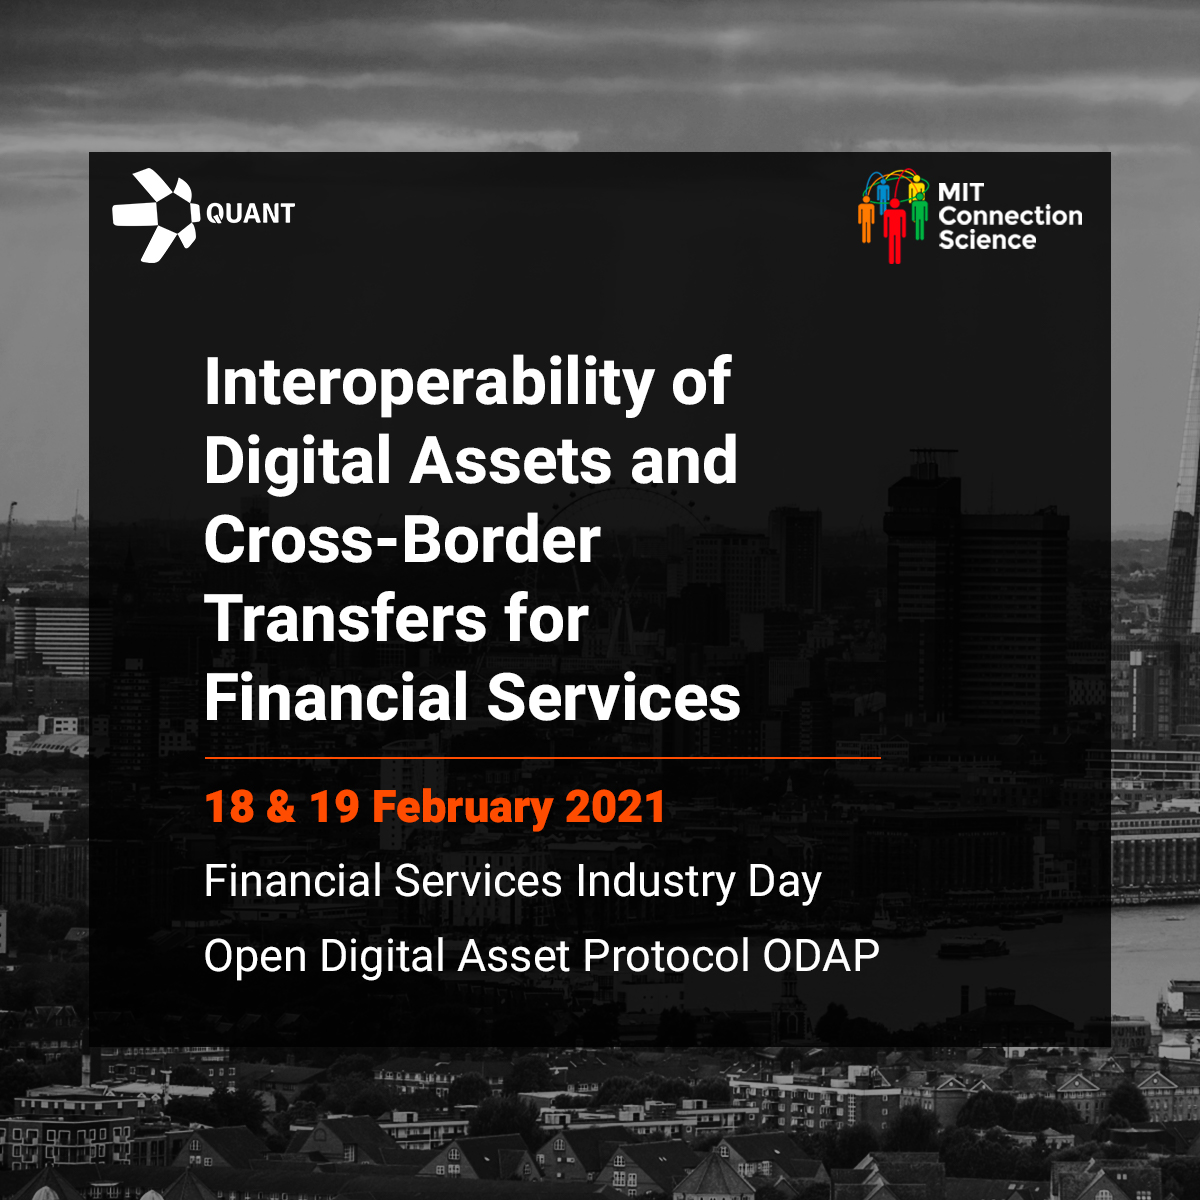 Webinar Quant and MIT Industry Day for Financial services on interoperability of digital assets and cross-border transfers